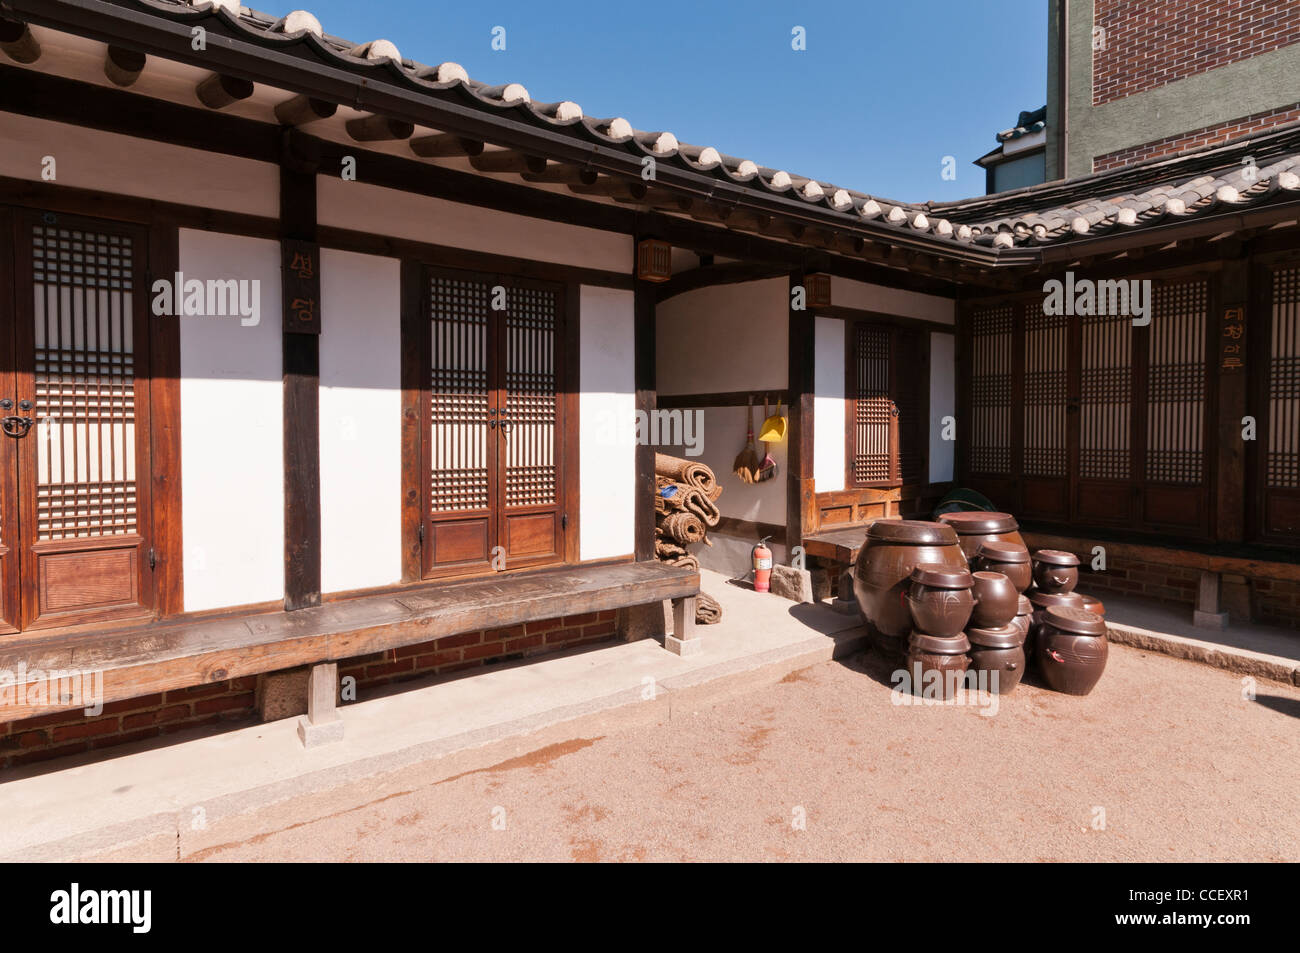 Hanok (Korean traditional house with timber frames and clay tiles) and its courtyard.  Clay pots are on display. Stock Photo